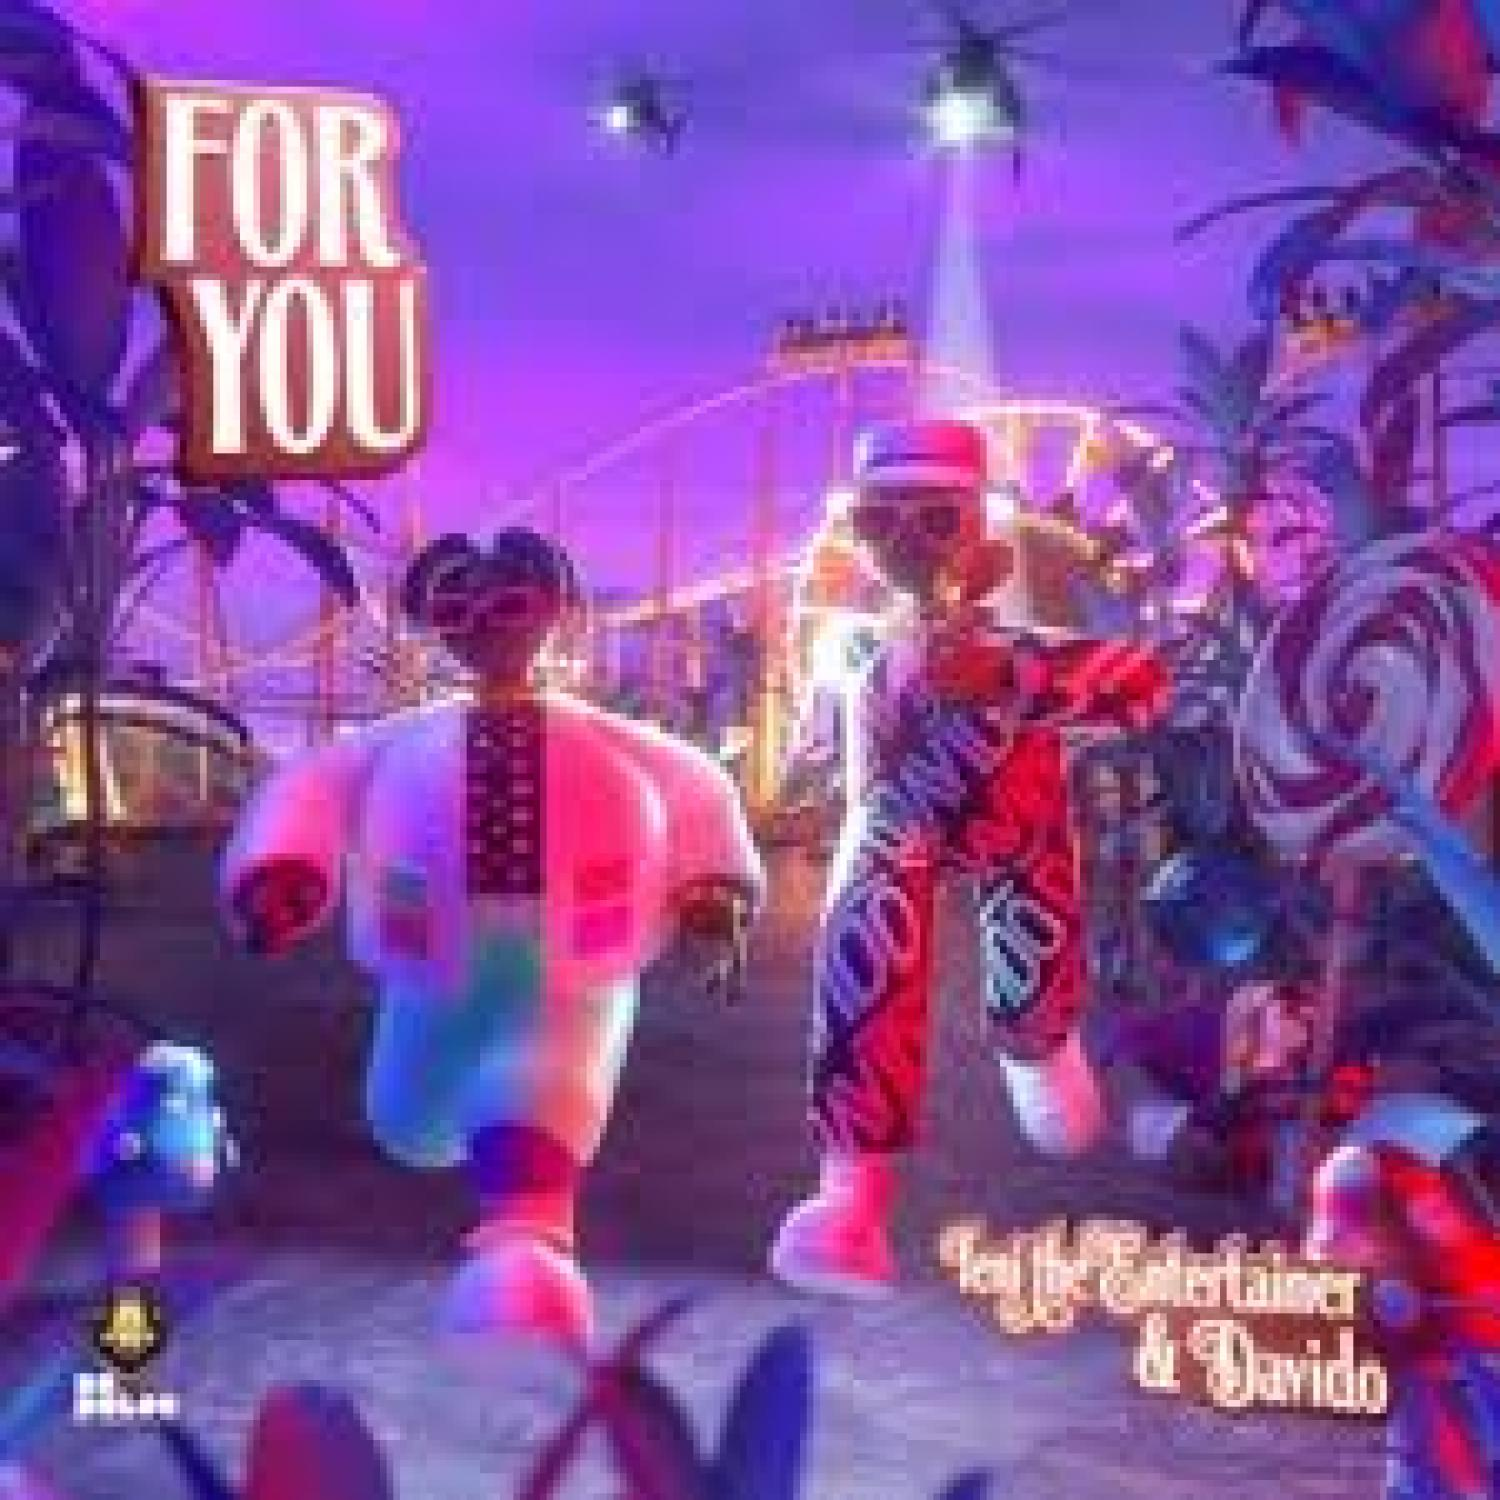 DOWNLOAD MP3: Teni ft. Davido – For You (Free MP3) AUDIO 320kbps